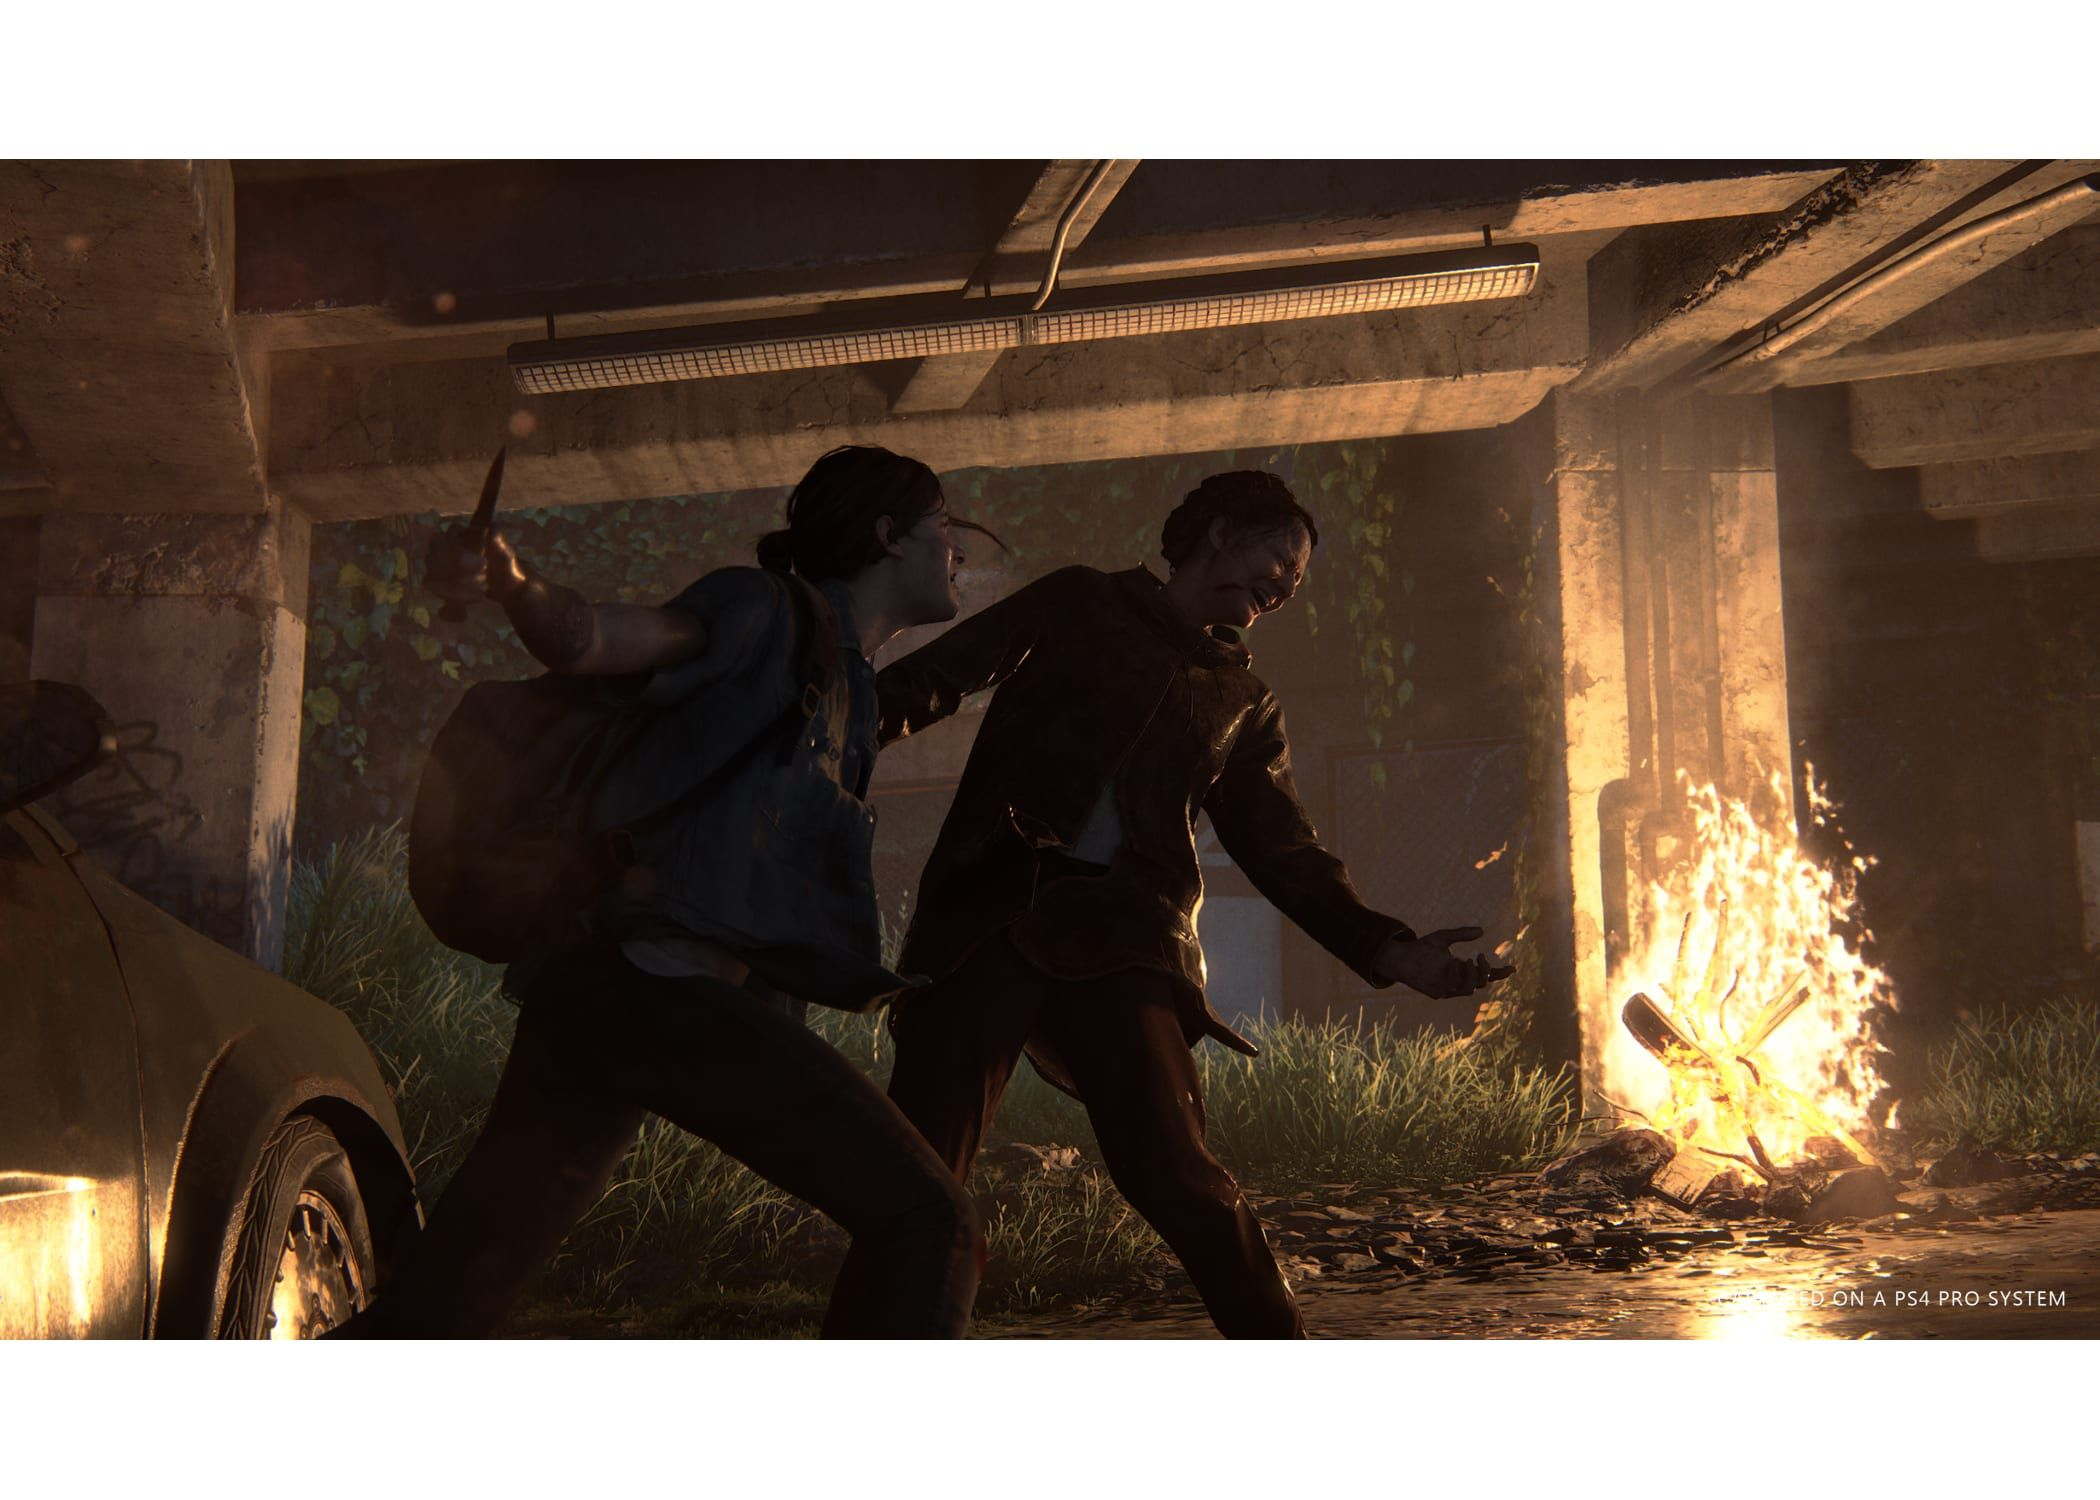 Buy The Last Of Us Part Ii Standard Plus Edition Game Exclusive On Playstation 4 Game Affiliate Ad Ii In 2020 The Last Of Us Ghost Of Tsushima State Of Play